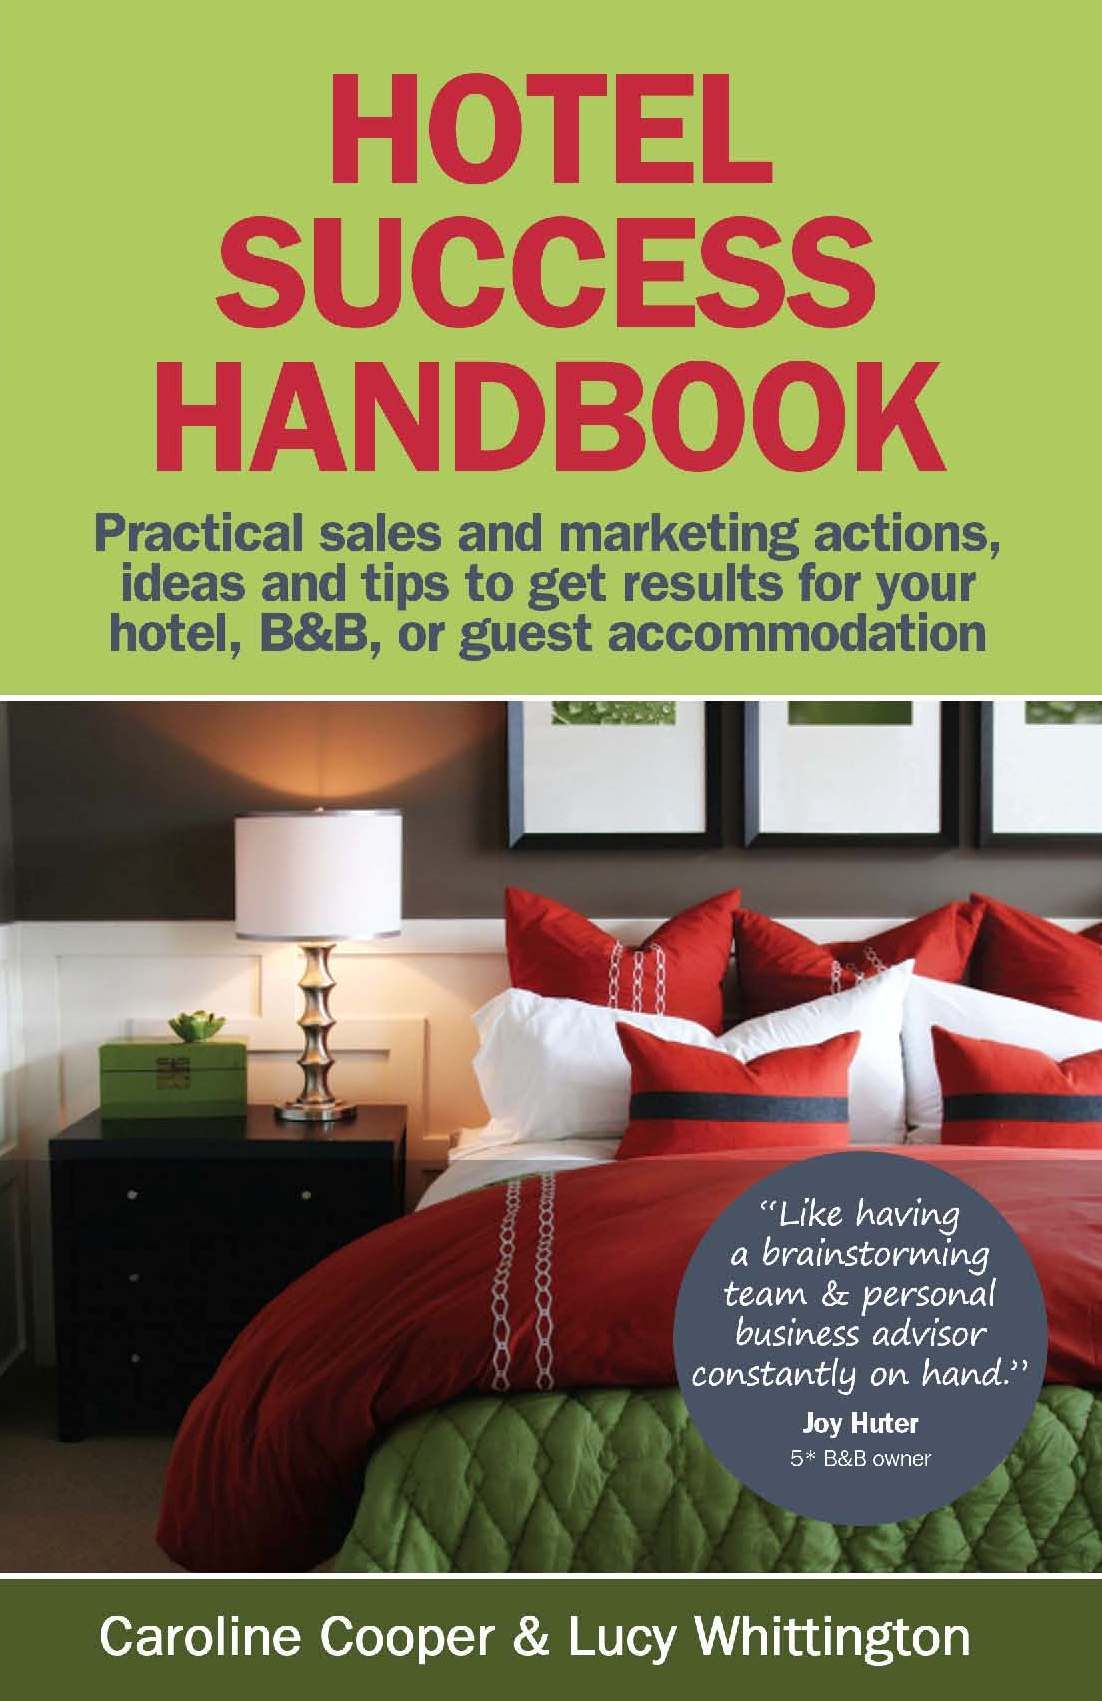 Hotel Success Handbook - Practical Sales And Marketing Ideas  Actions  And Tips To Get Results For Your Small Hotel  B&B  Or Guest Accommodation